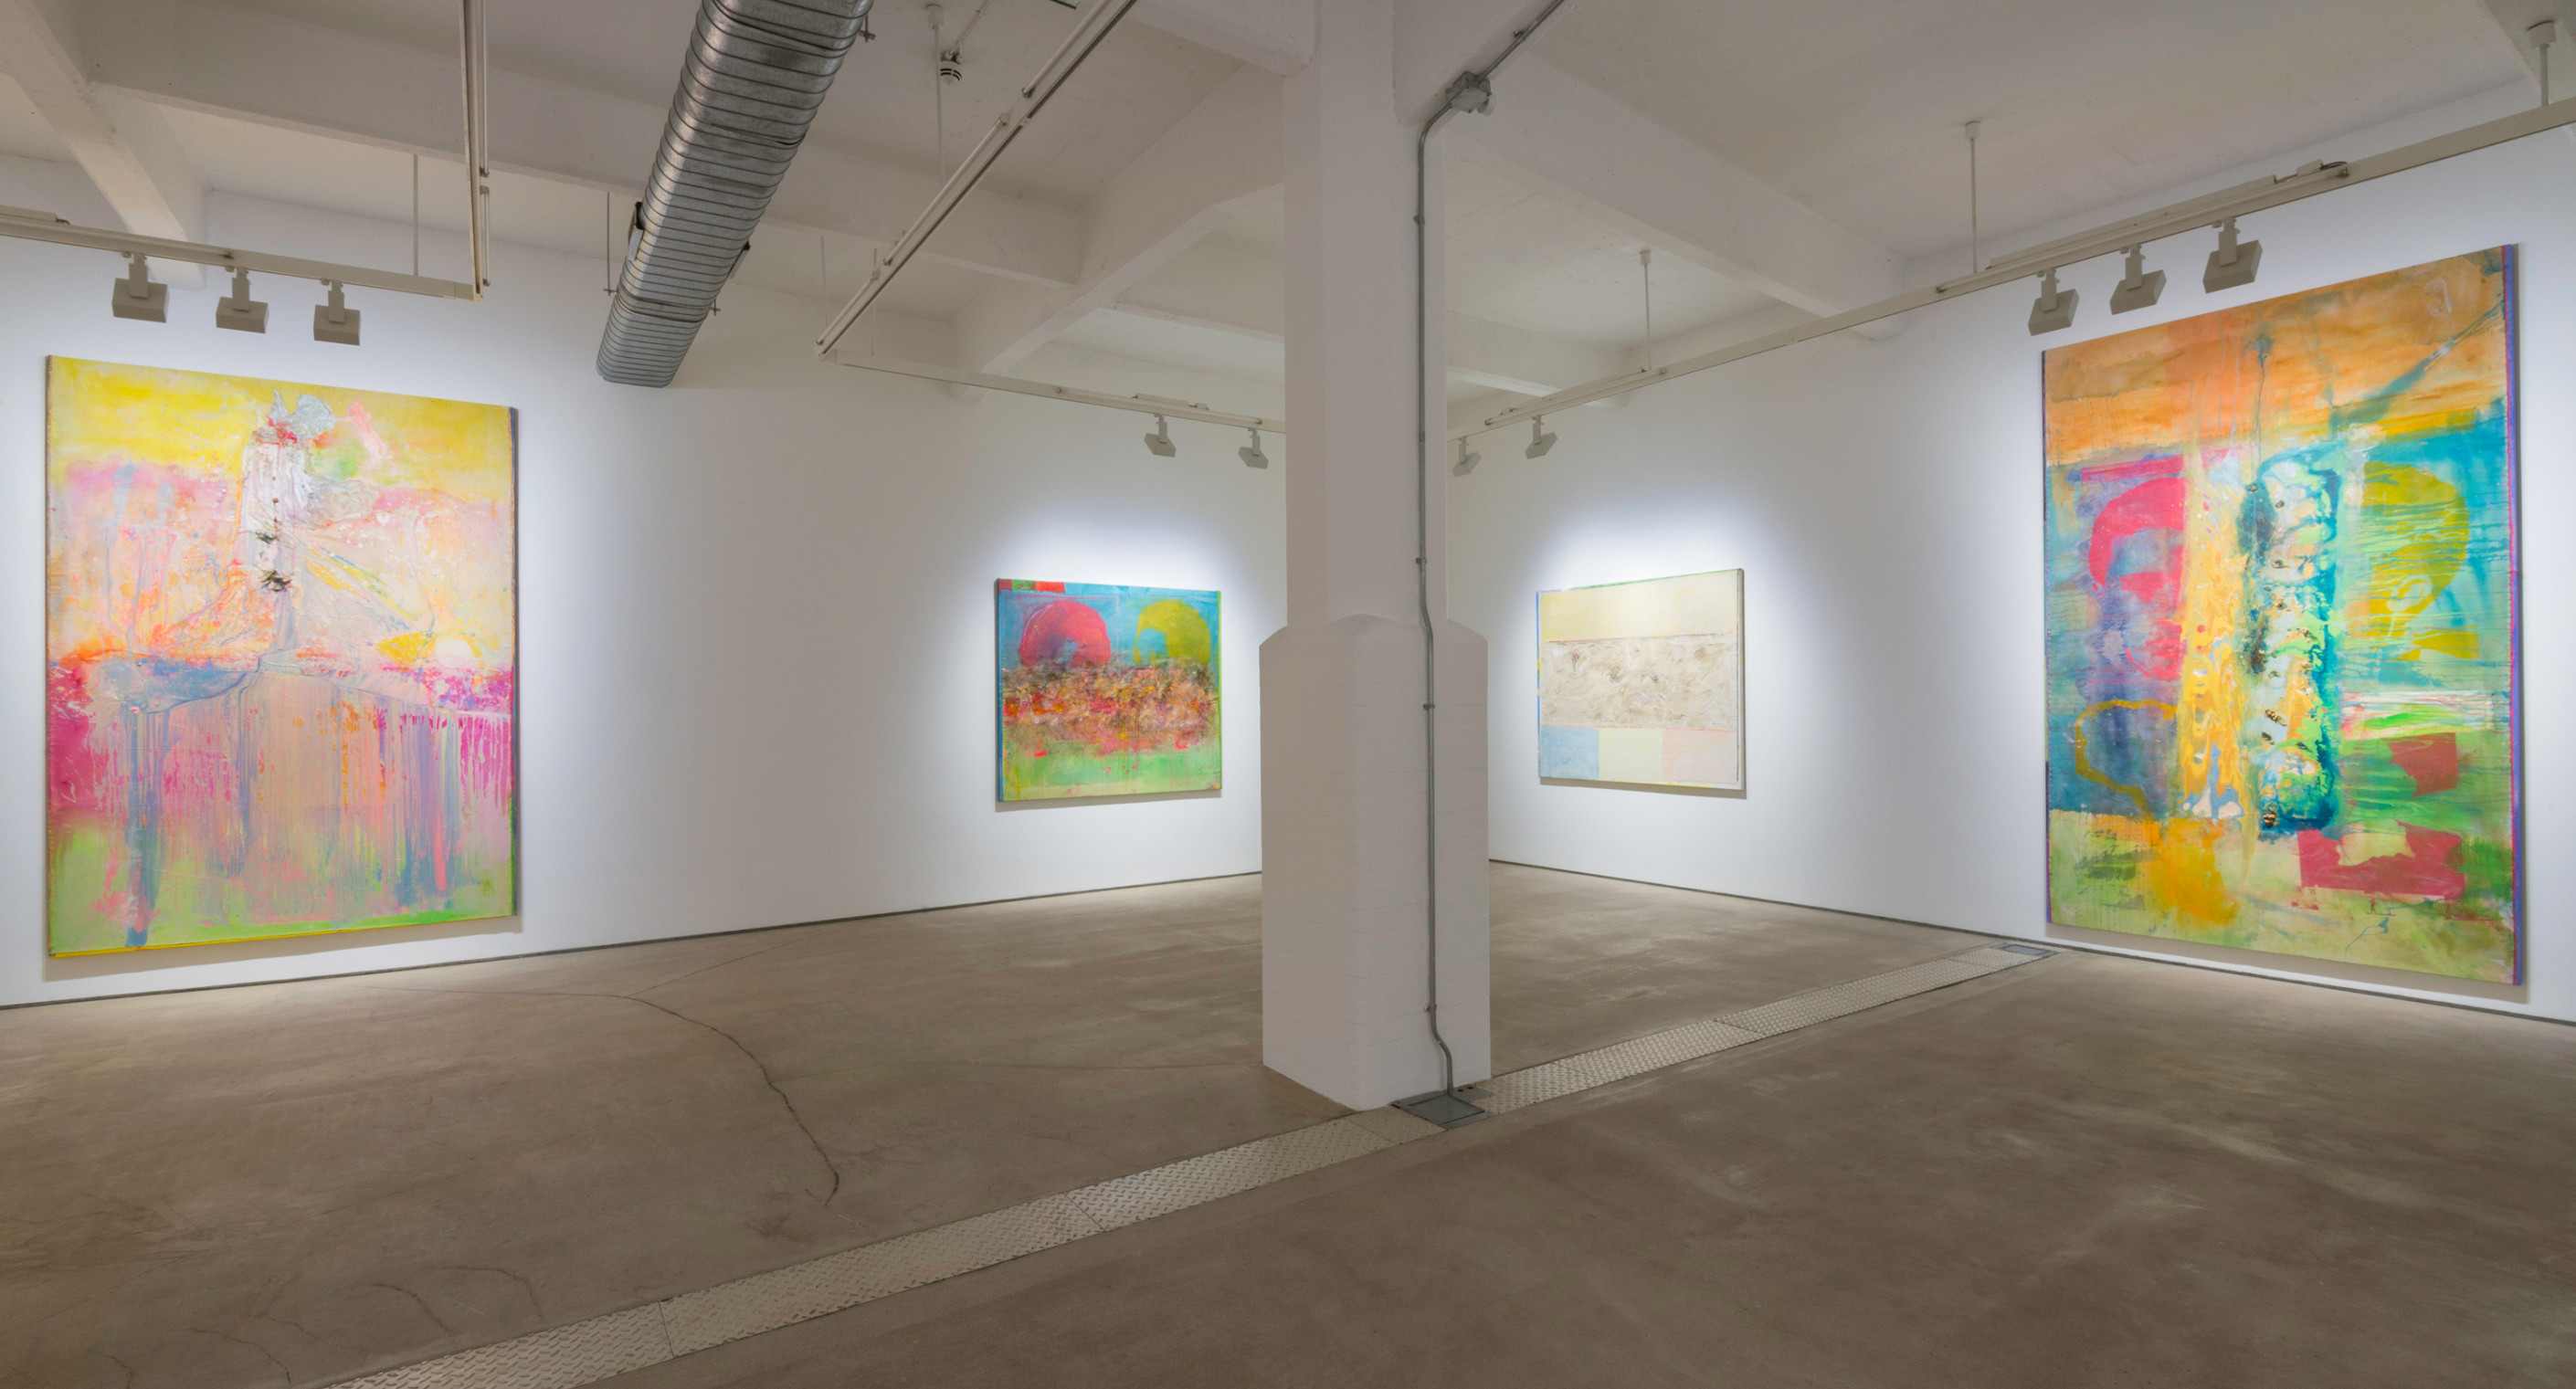 Installation view 'Fishes, Wishes in Summertime Blue', Hales London, 8 September - 28 October 2017